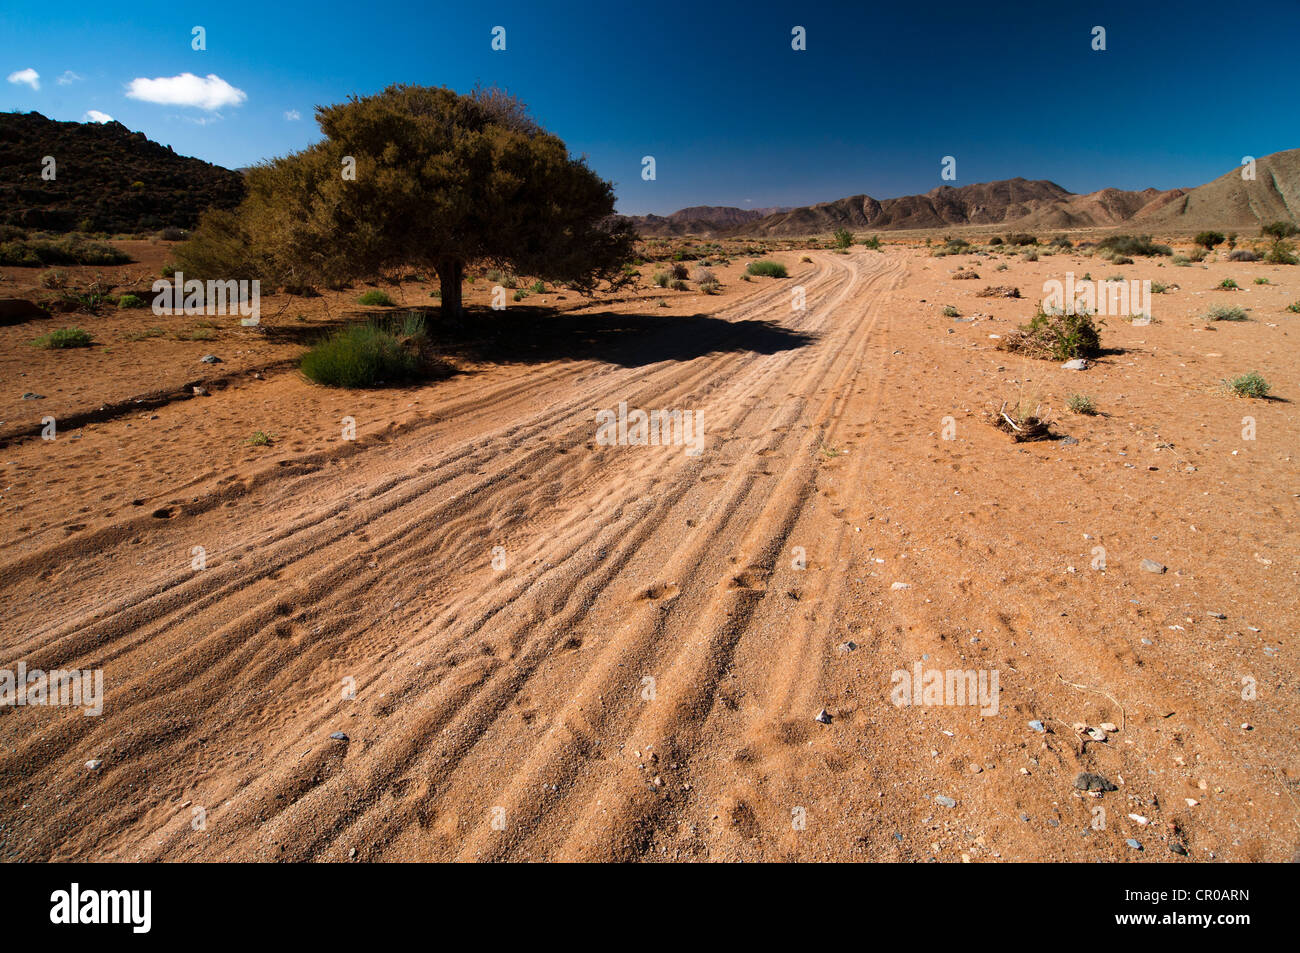 Sandy track passing through Richtersveld National Park, Northern Cape, South Africa, Africa - Stock Image